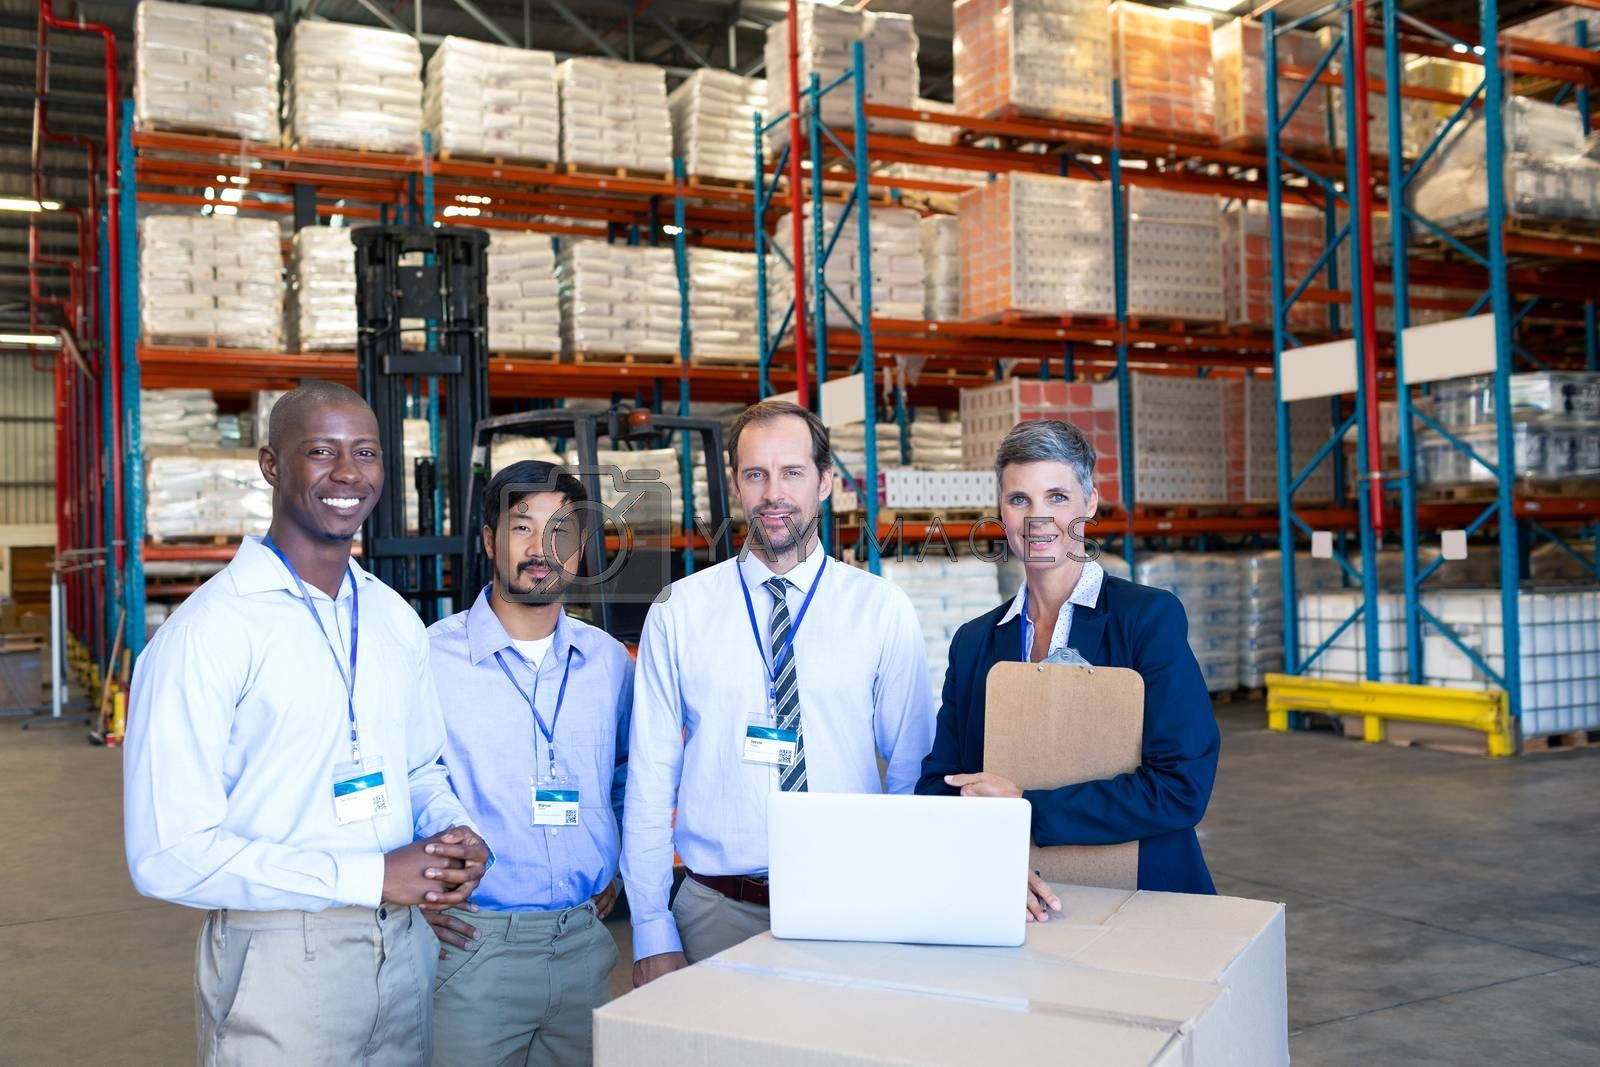 Front view of happy mature Caucasian staff looking at camera in warehouse. This is a freight transportation and distribution warehouse. Industrial and industrial workers concept